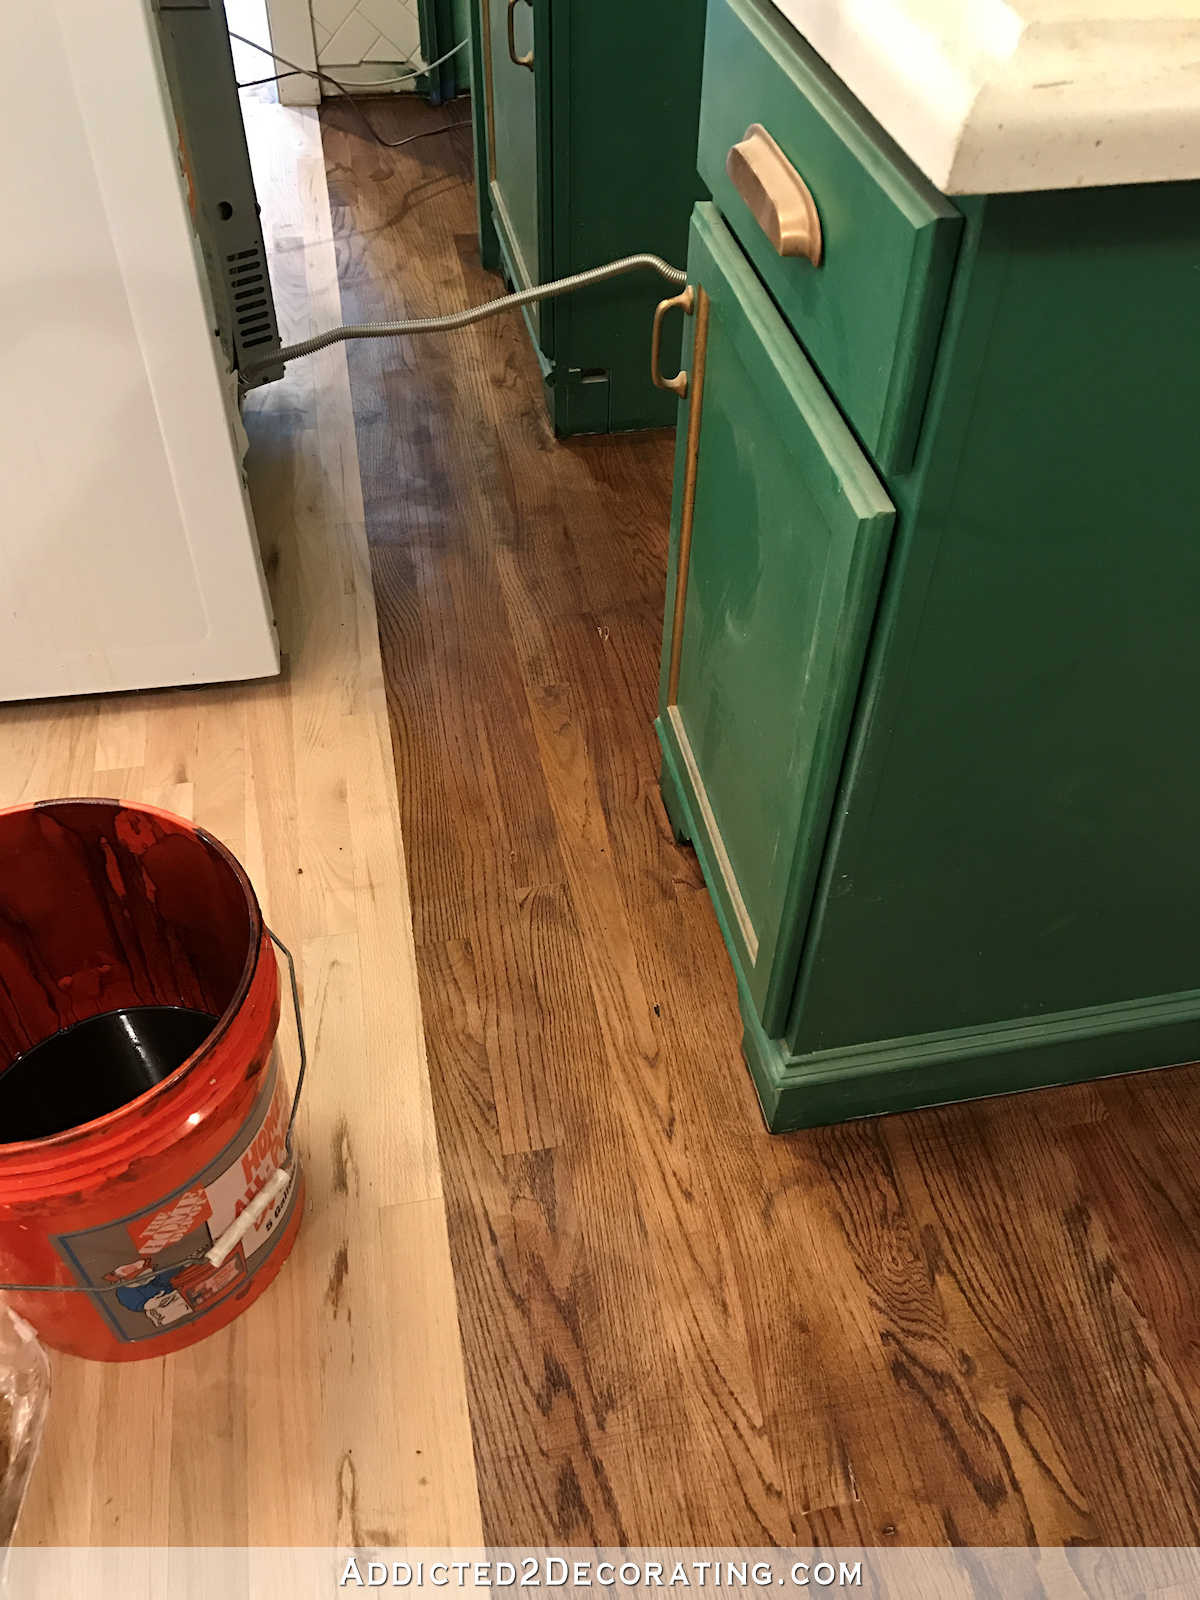 redoing hardwood floors diy of adventures in staining my red oak hardwood floors products process for staining red oak hardwood floors 10 stain on kitchen floor behind stove and refrigerator